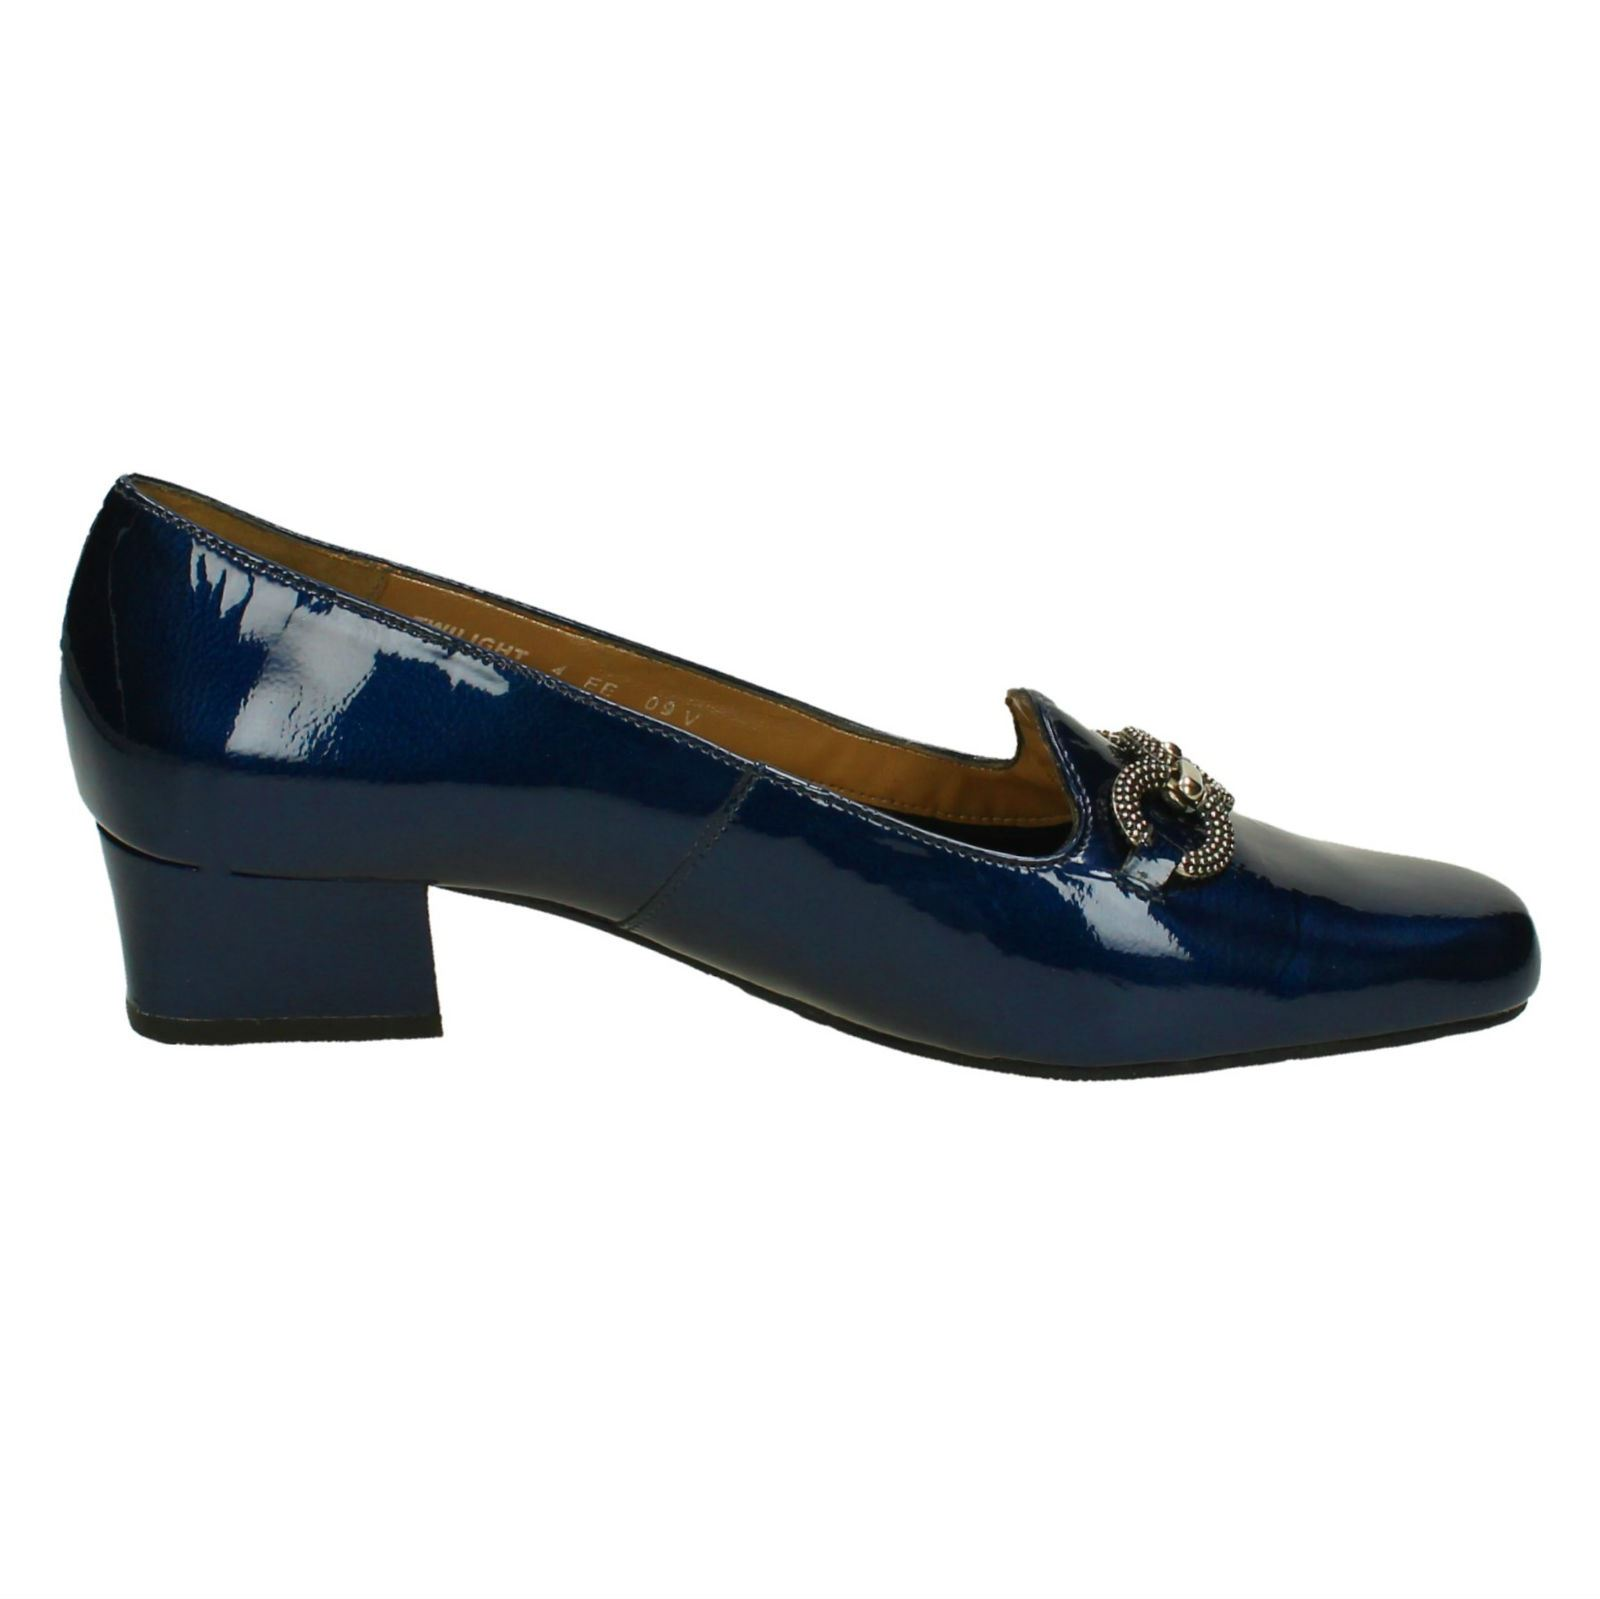 Where To Buy Van Dal Shoes